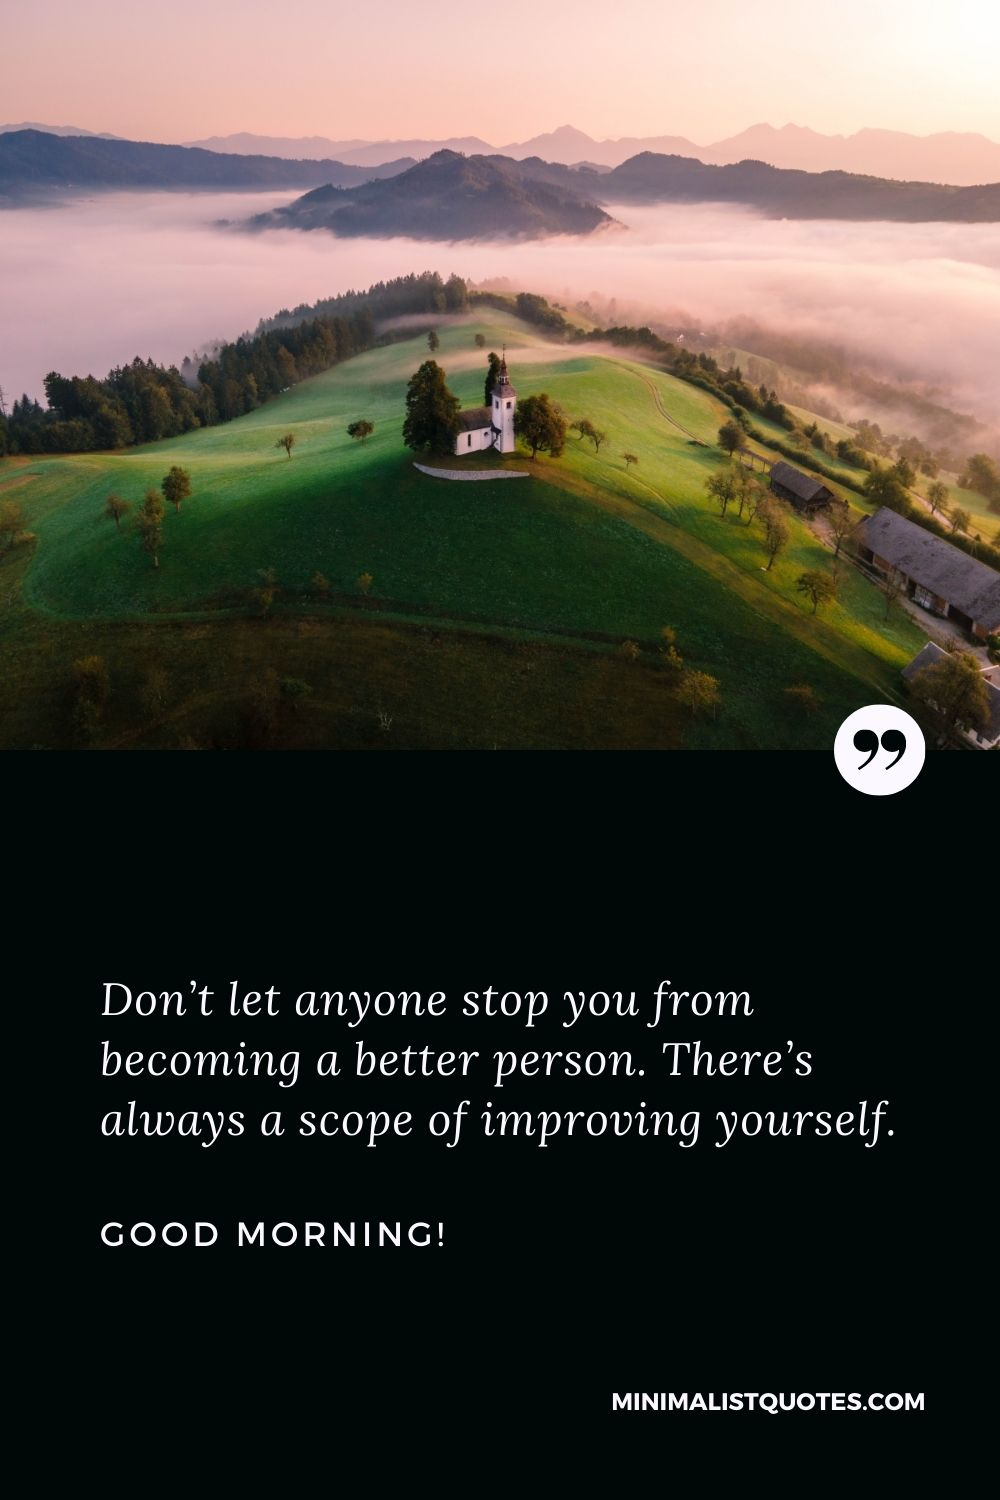 Good Morning Wish & Message With HD Image: Don't let anyone stop you from becoming a better person. There's always a scope of improving yourself. Good Morning!